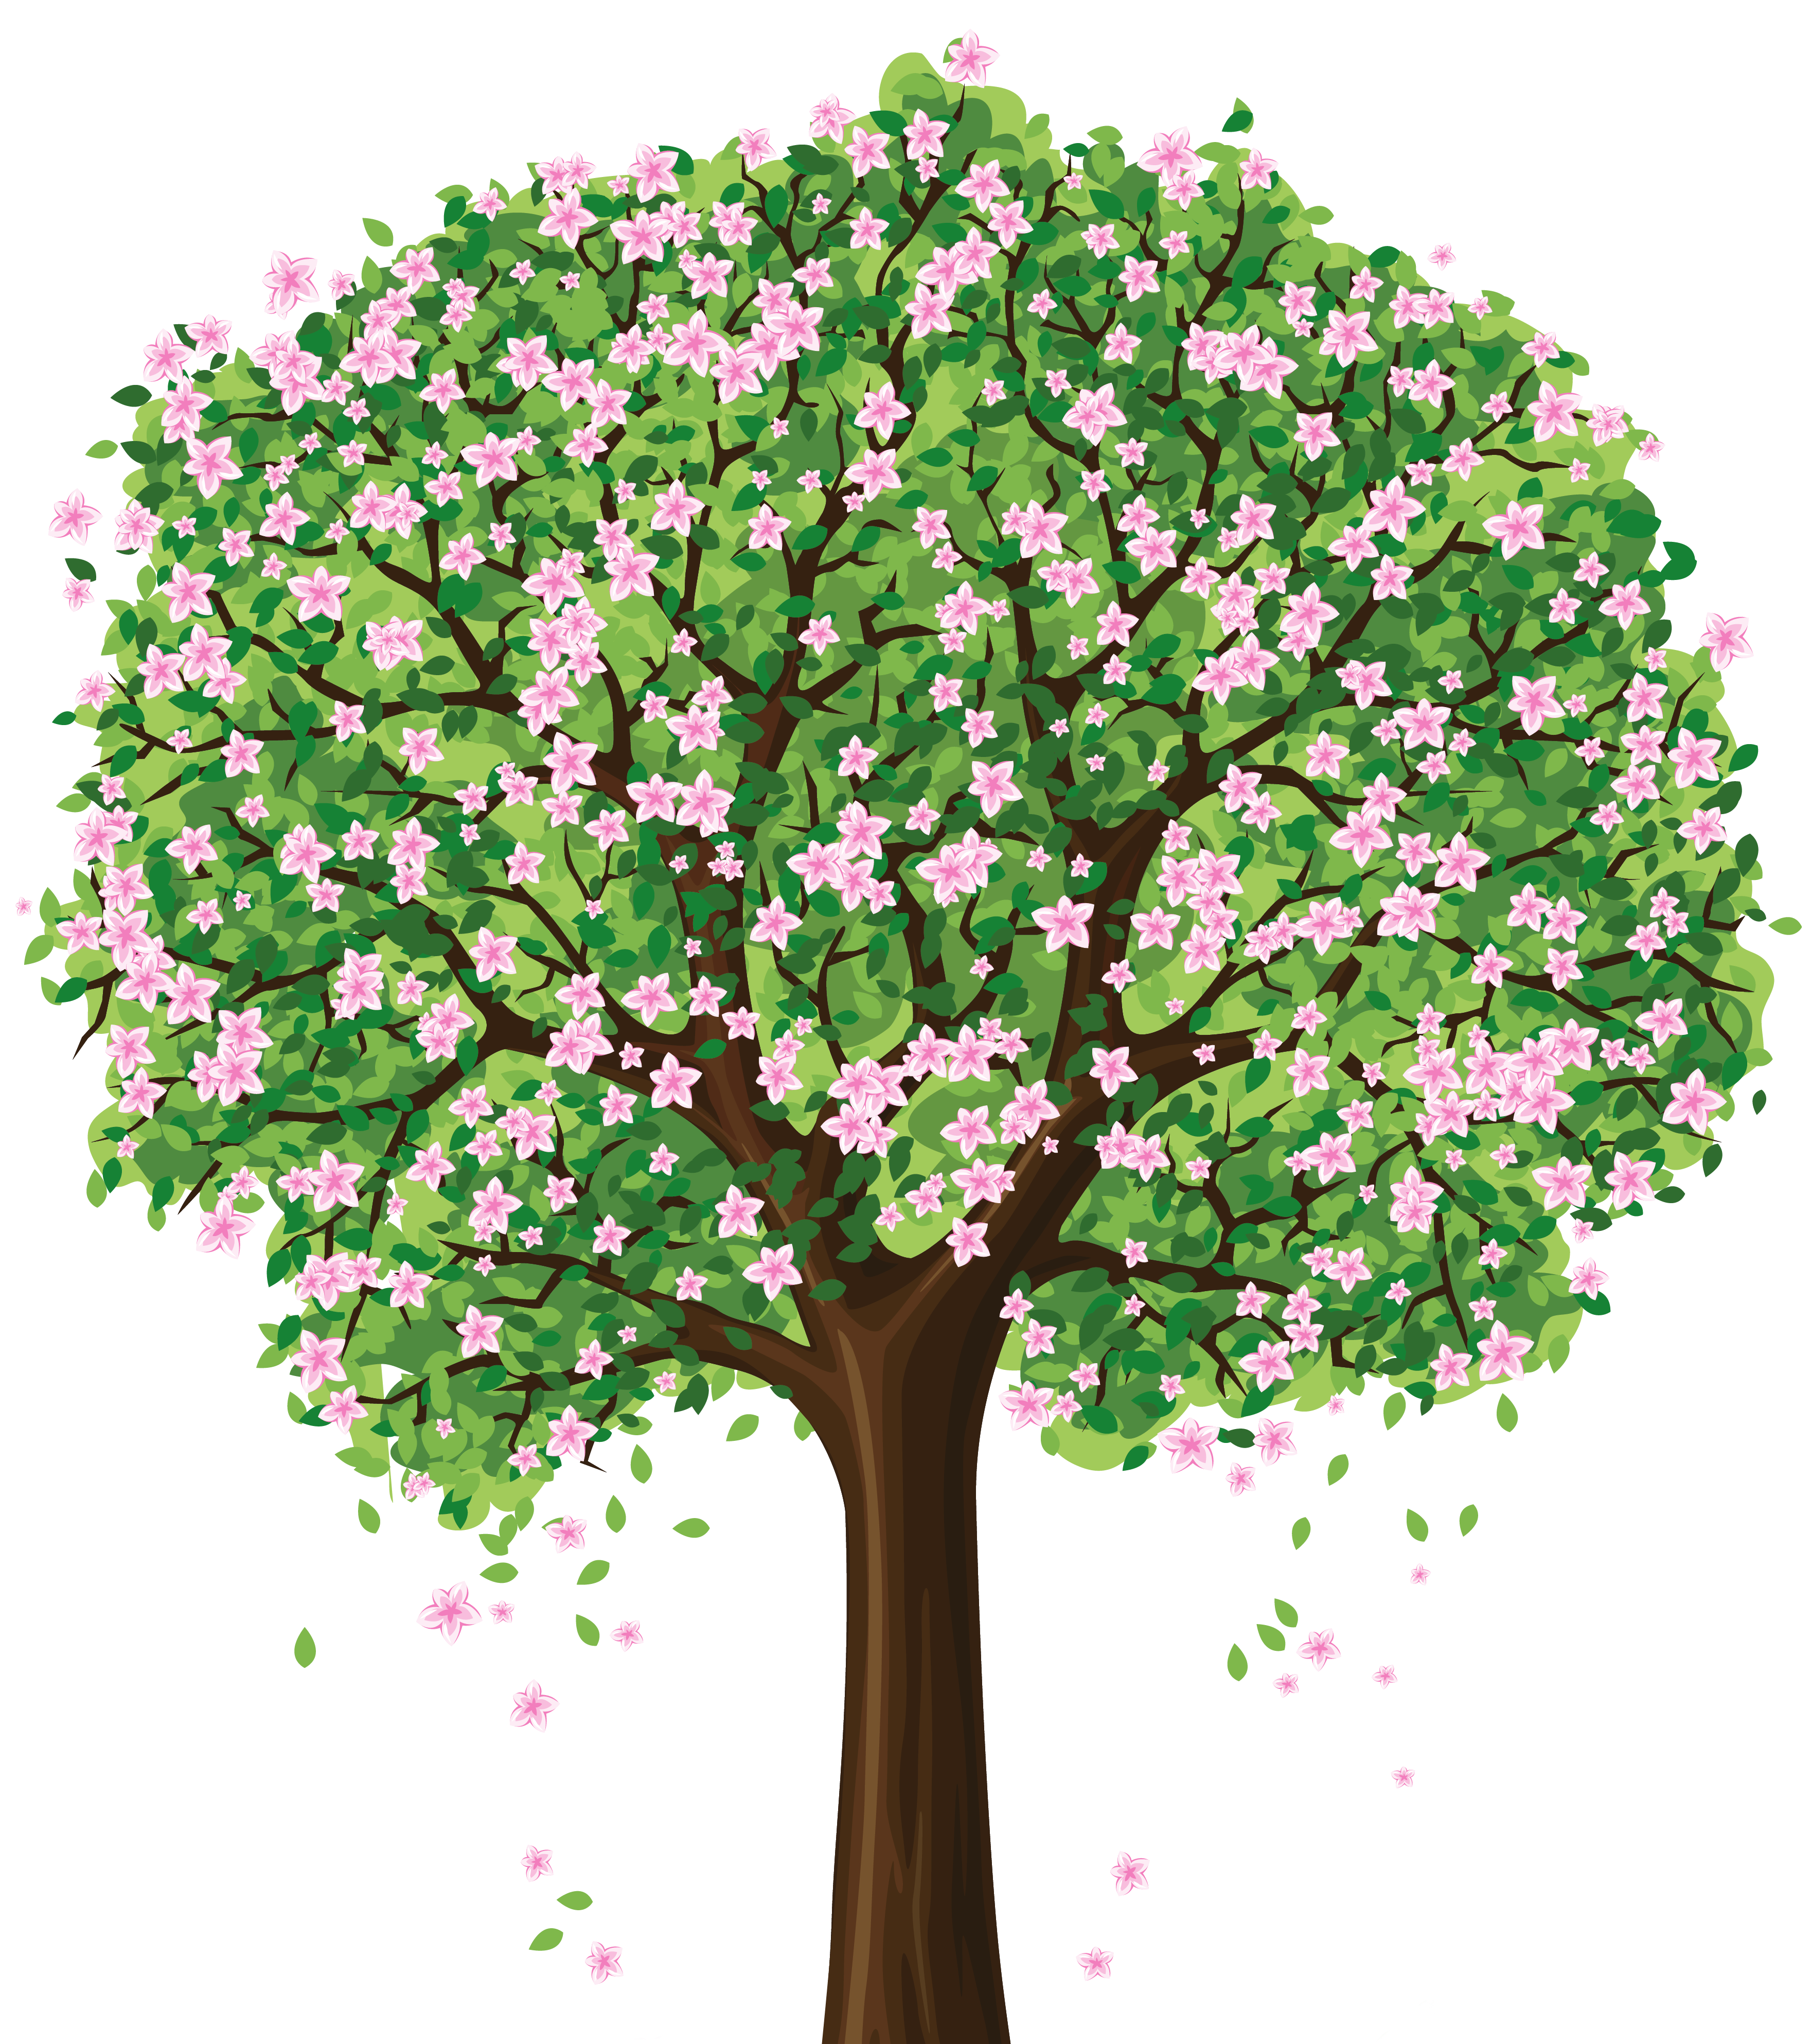 Free Free Spring Cliparts, Download Free Clip Art, Free Clip.